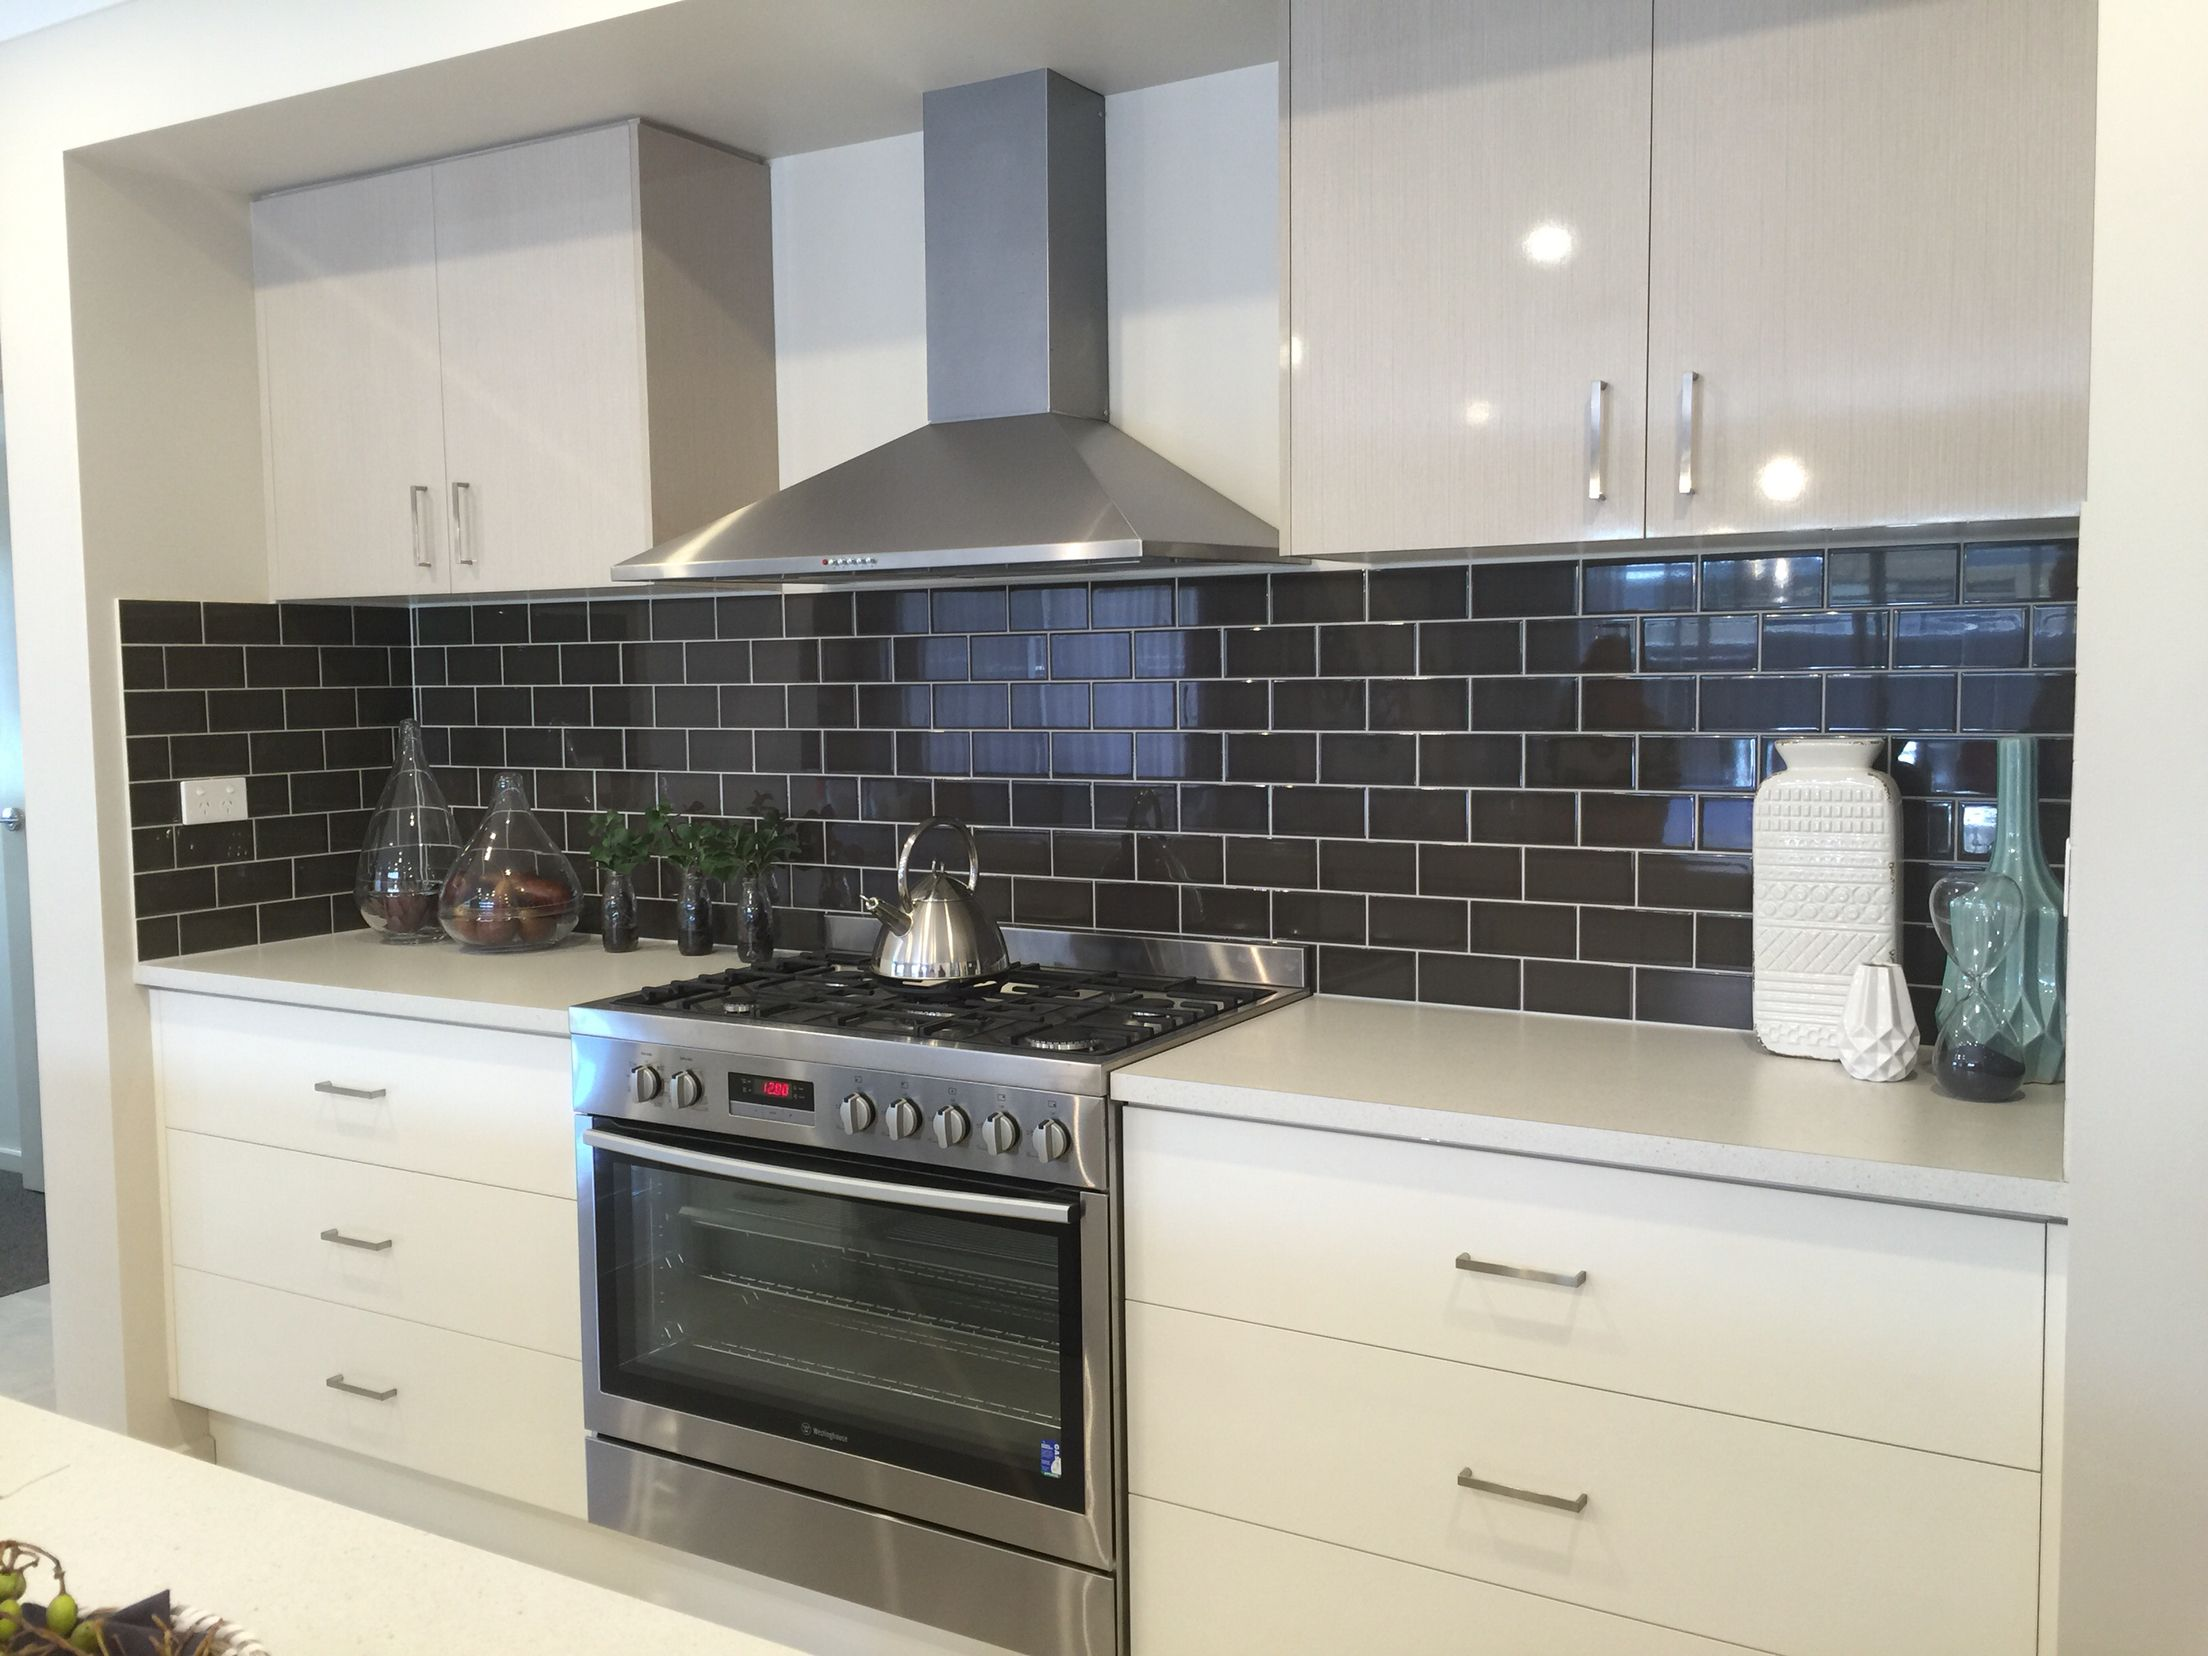 Charcoal Or Black Splashback Tiles Dream Home Kitchen